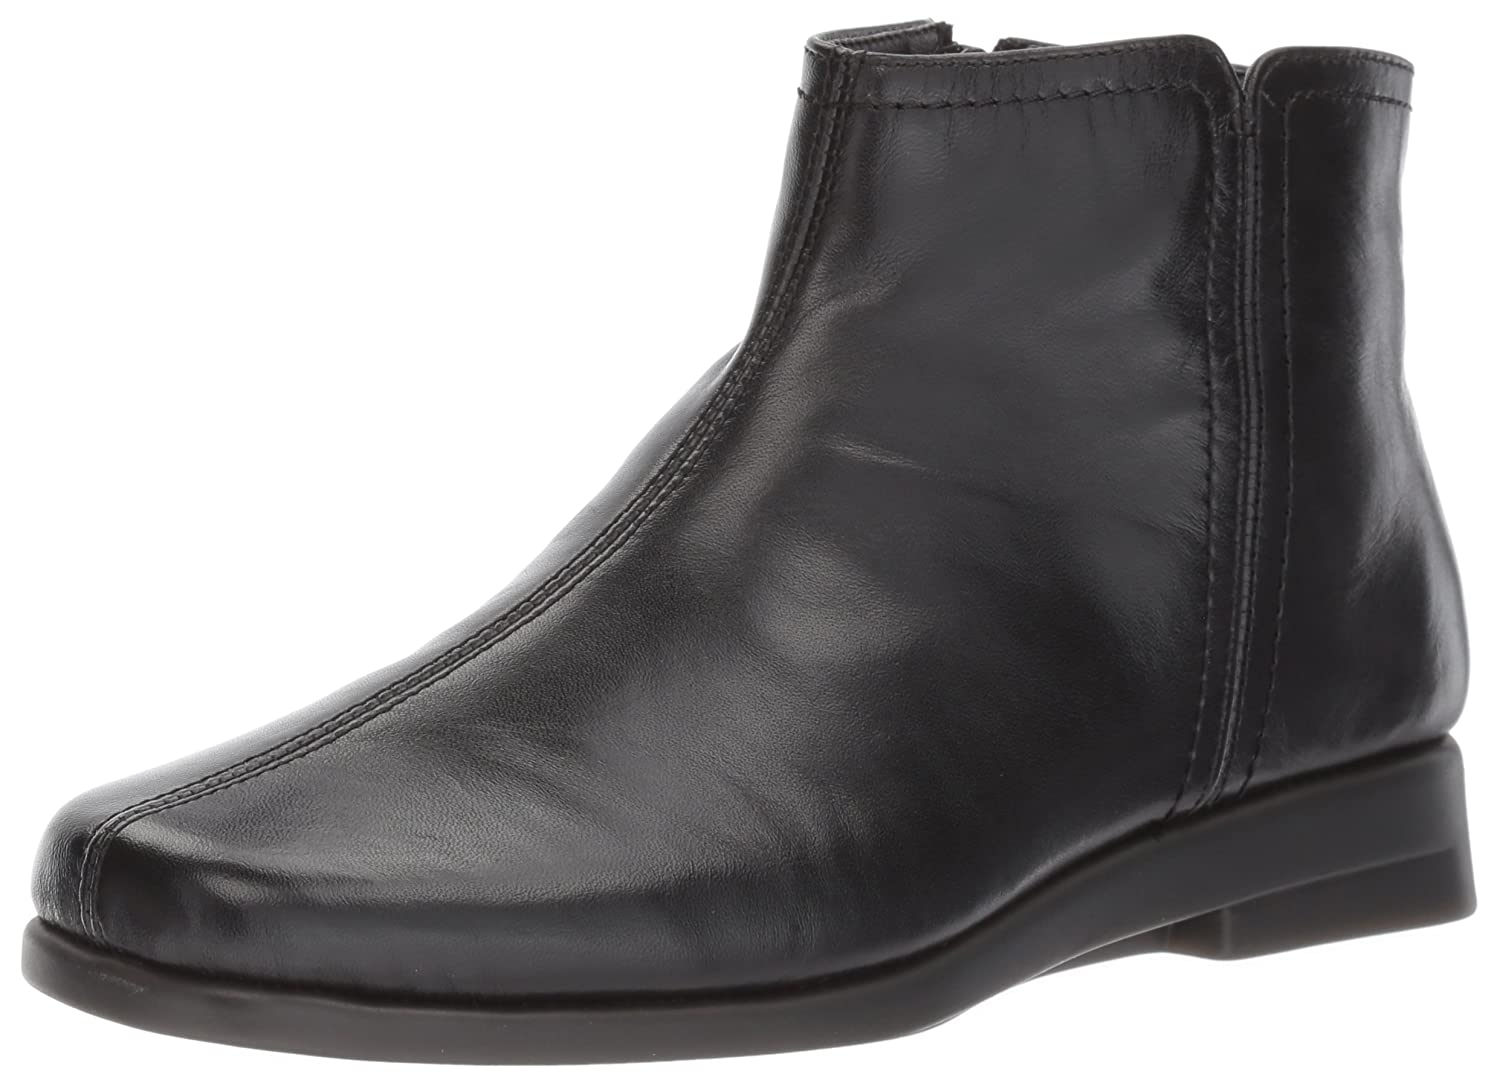 Aerosoles Women's Double Trouble 2 Ankle Boot B06Y618B6N 8.5 W US|Black Leather